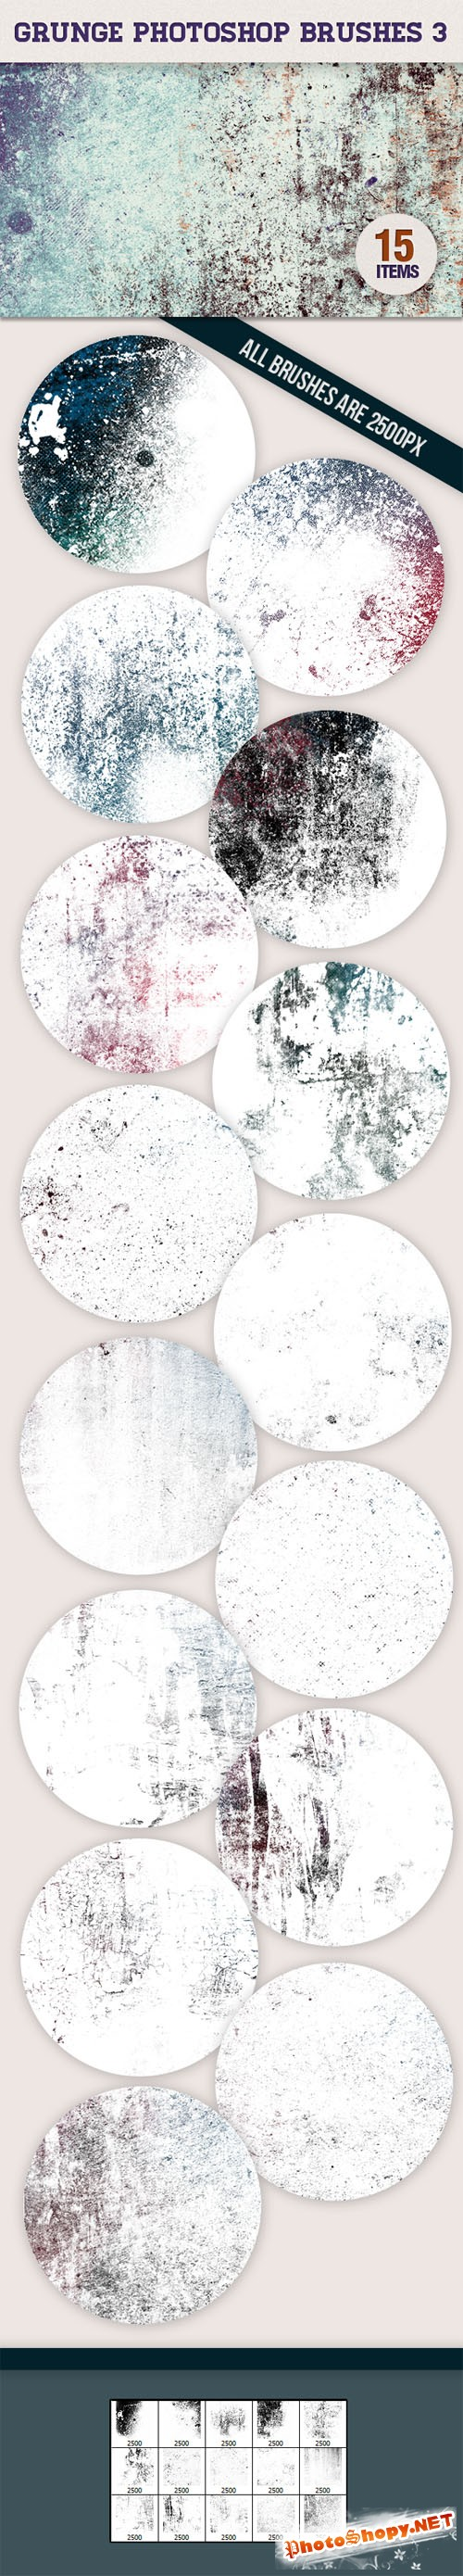 Designtnt - Grunge Photoshop Brushes Set 3